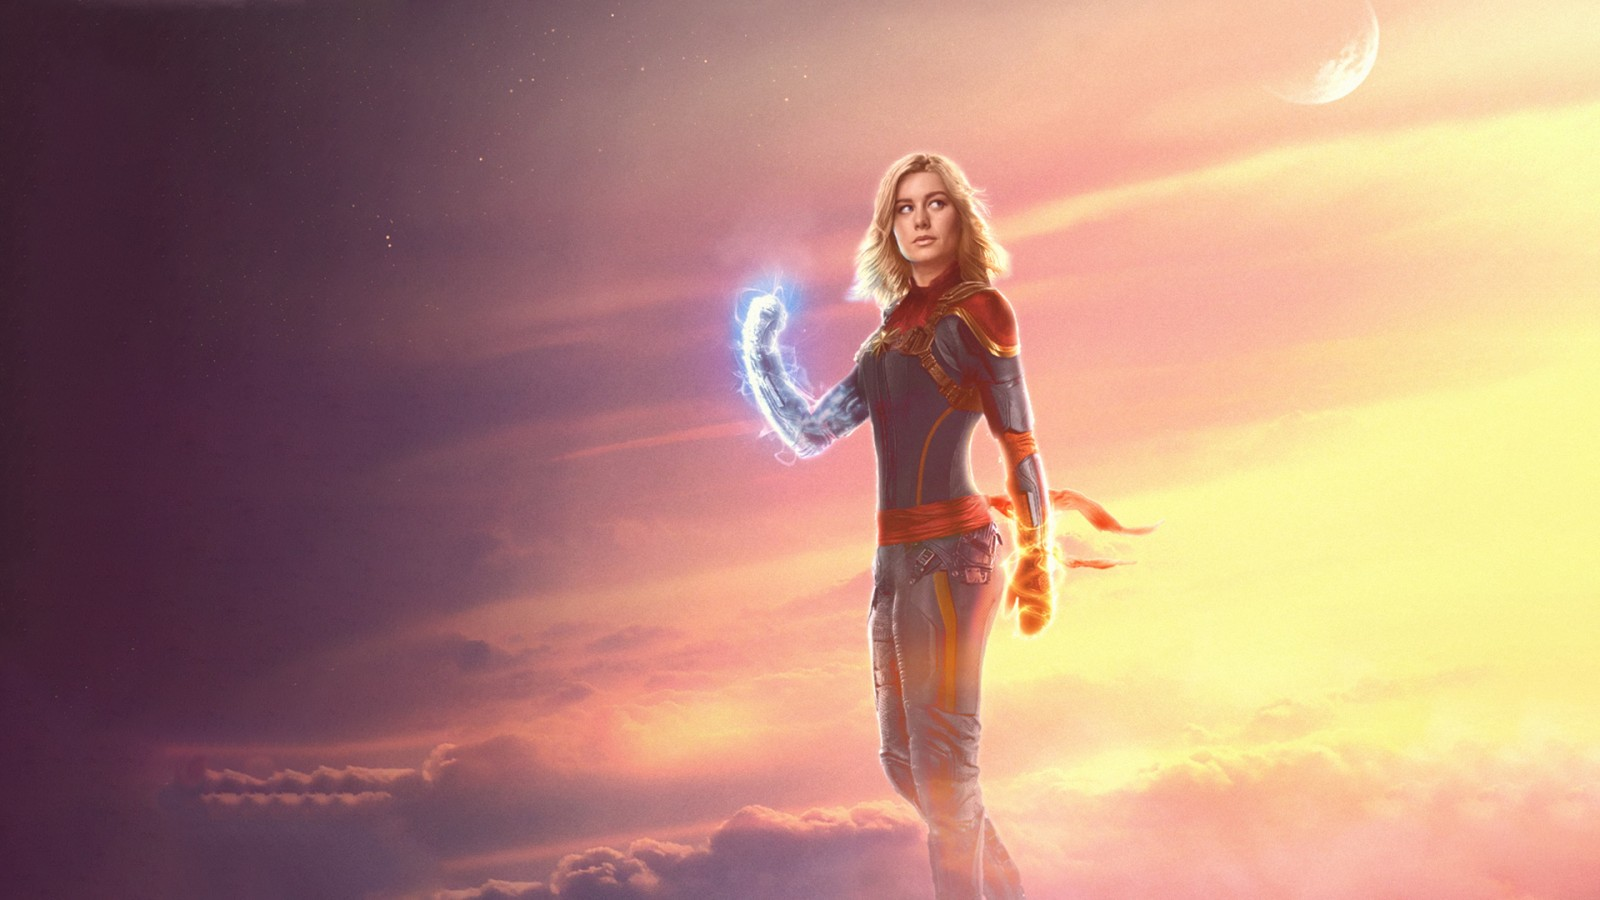 Power Rangers 2017 Iphone Wallpaper Brie Larson As Captain Marvel Wallpapers Hd Wallpapers